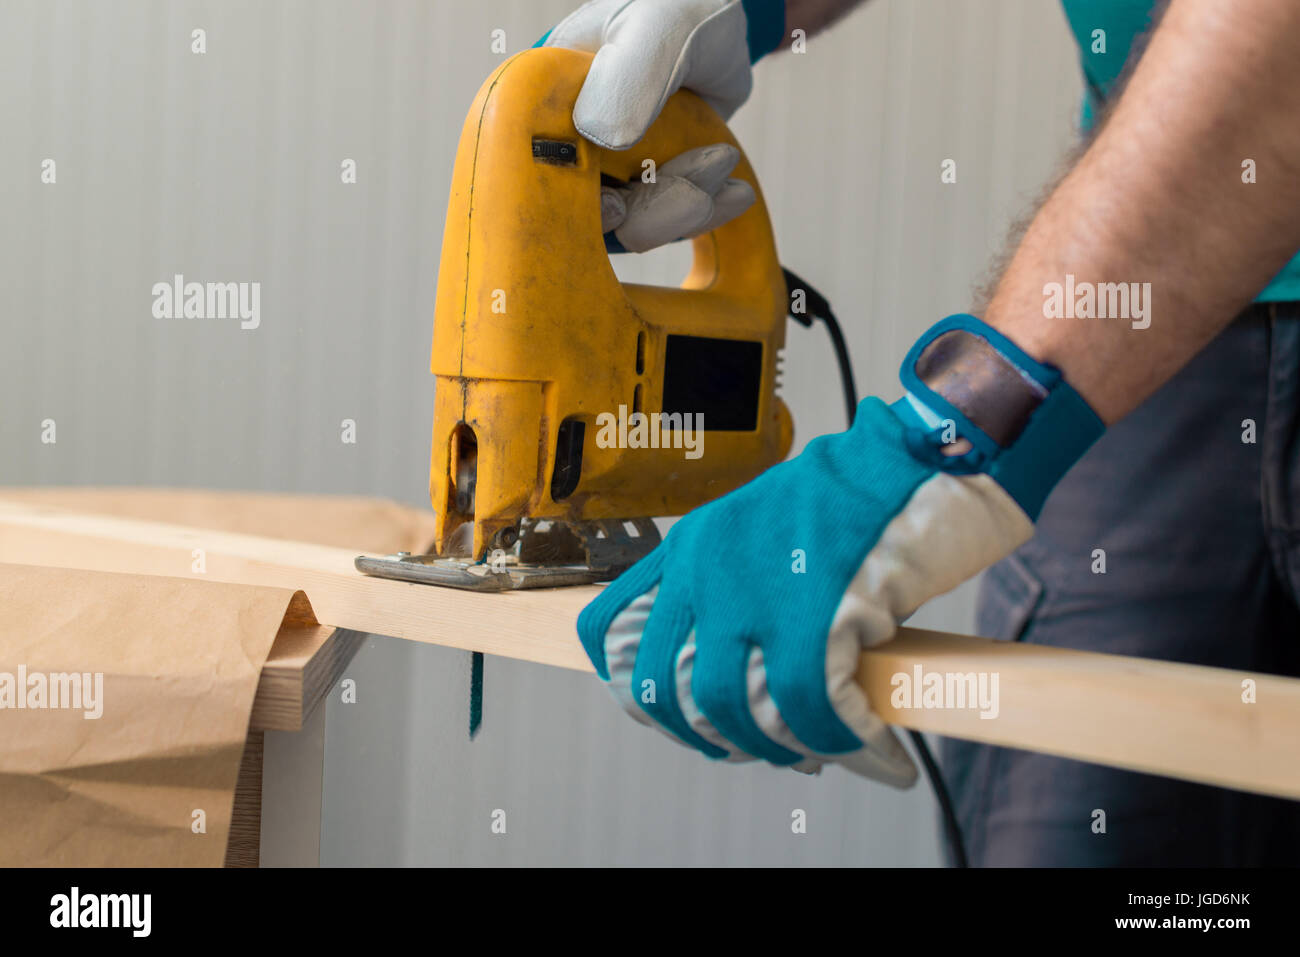 Carpenter handyman using electric handy saw on the woodwork workshop table - Stock Image